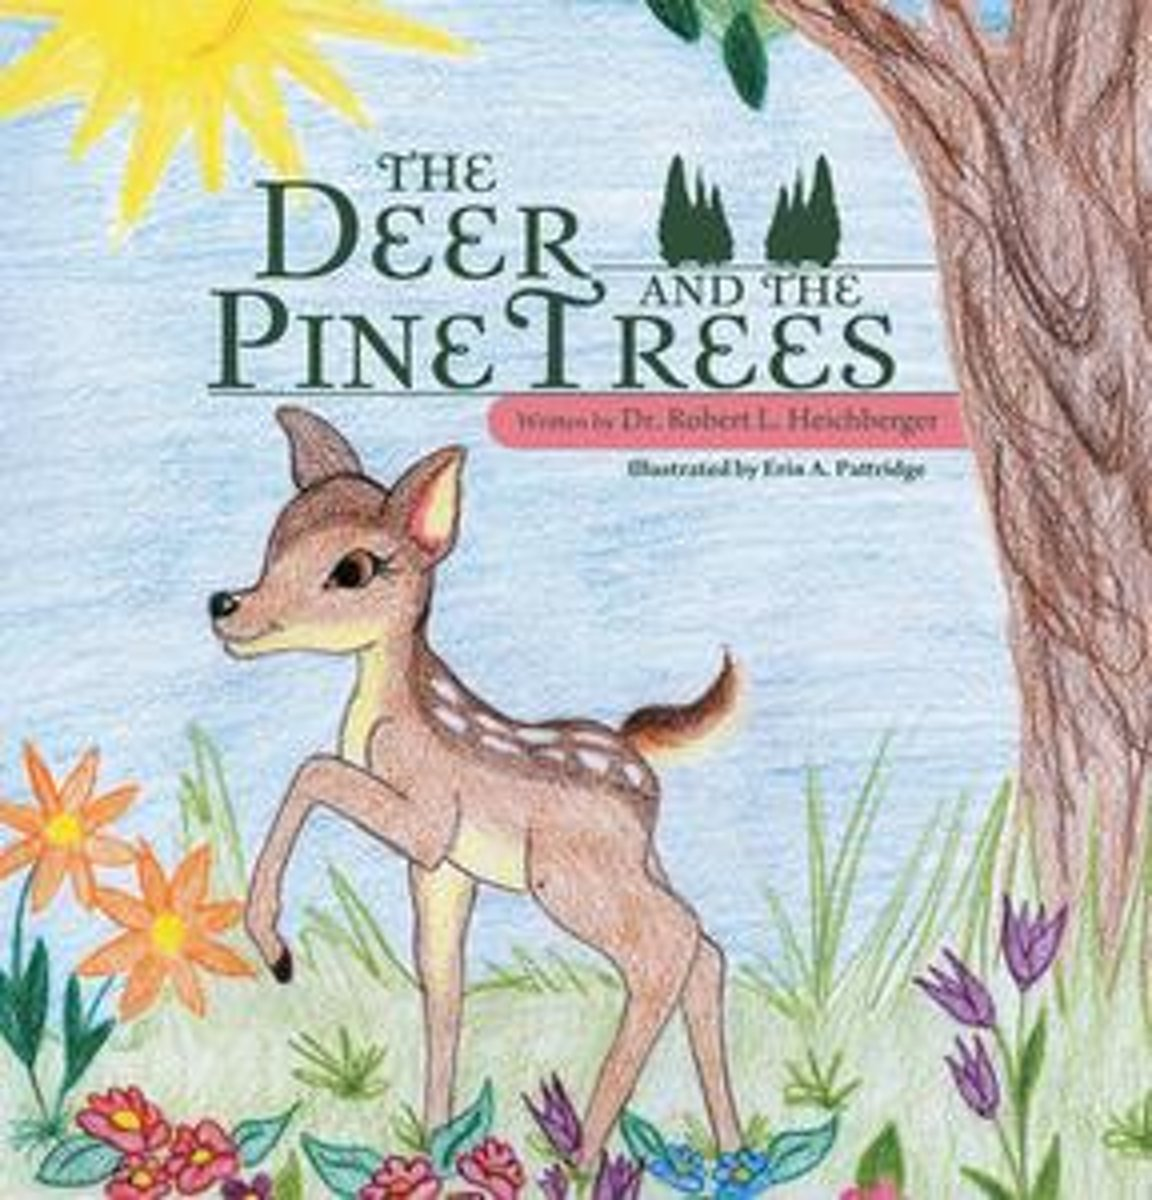 The Deer and the Pine Trees